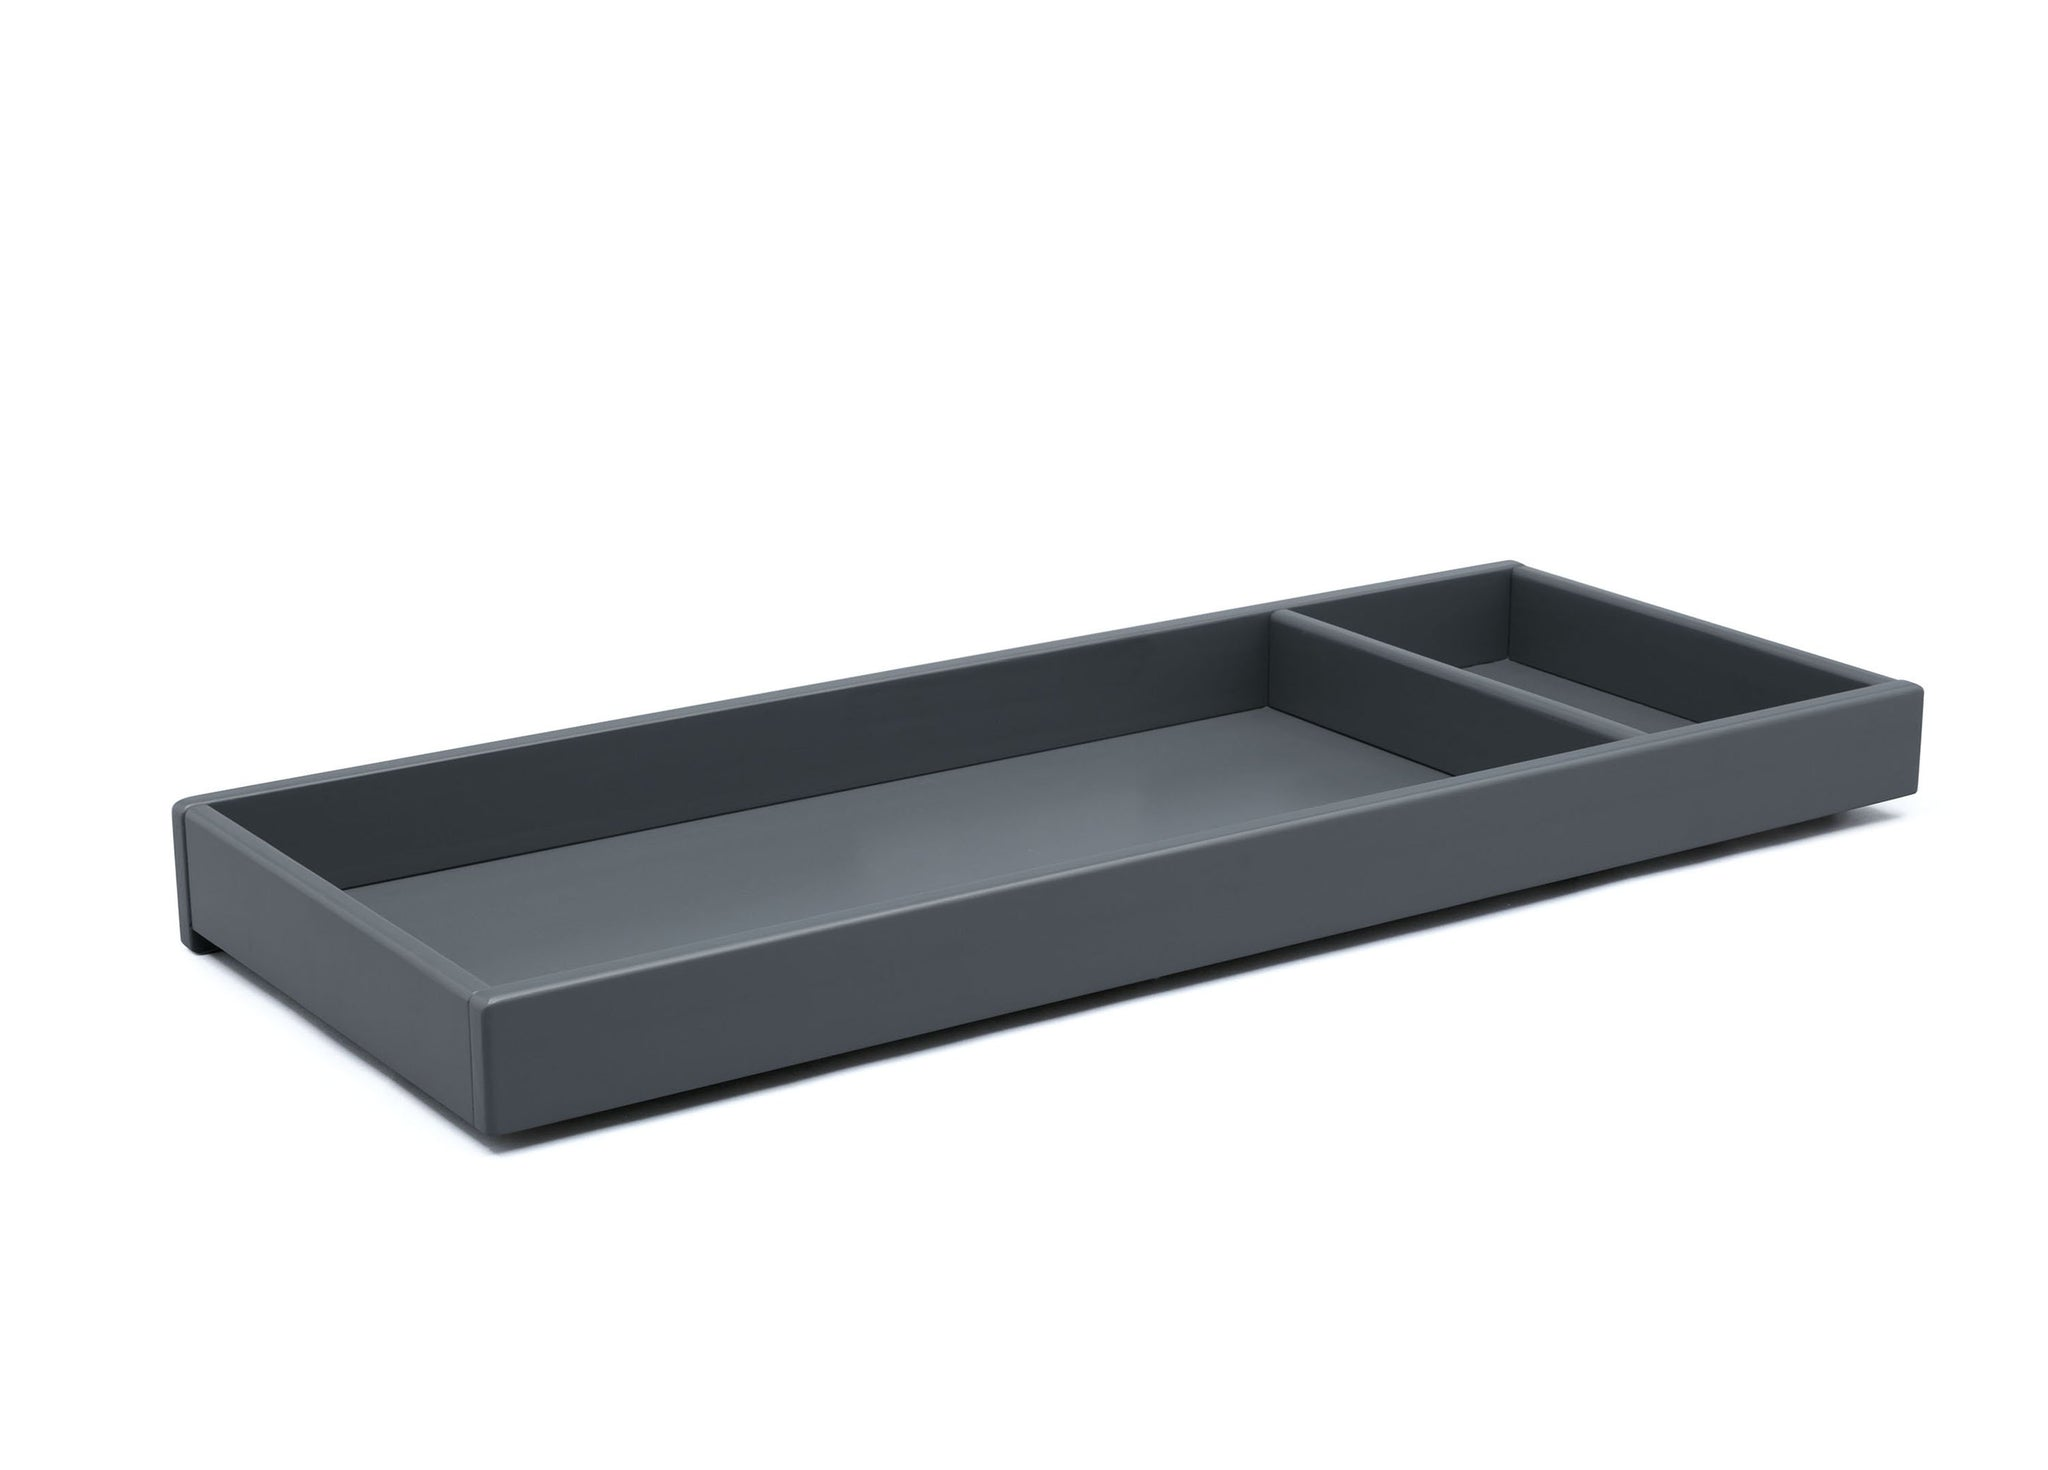 Delta Children Charcoal Grey (029) Avery Changing Tray (708710), Sideview, a1a